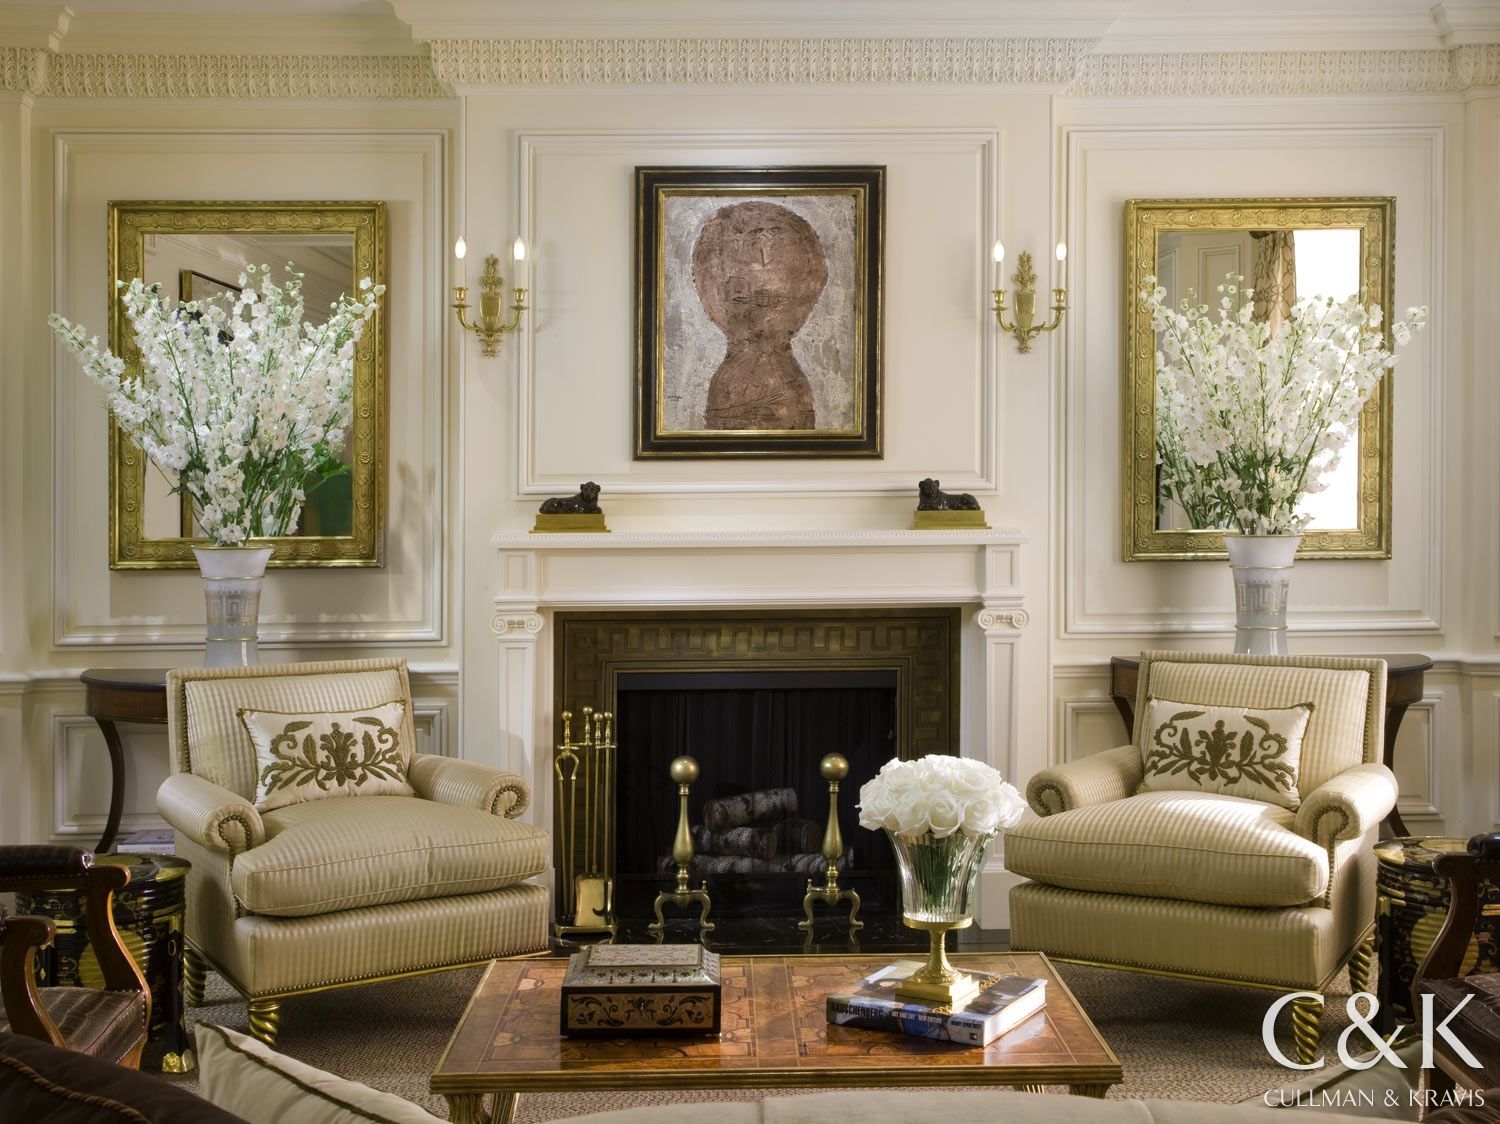 Fifth Avenue Pied a Terre - elegant rooms - Artemest